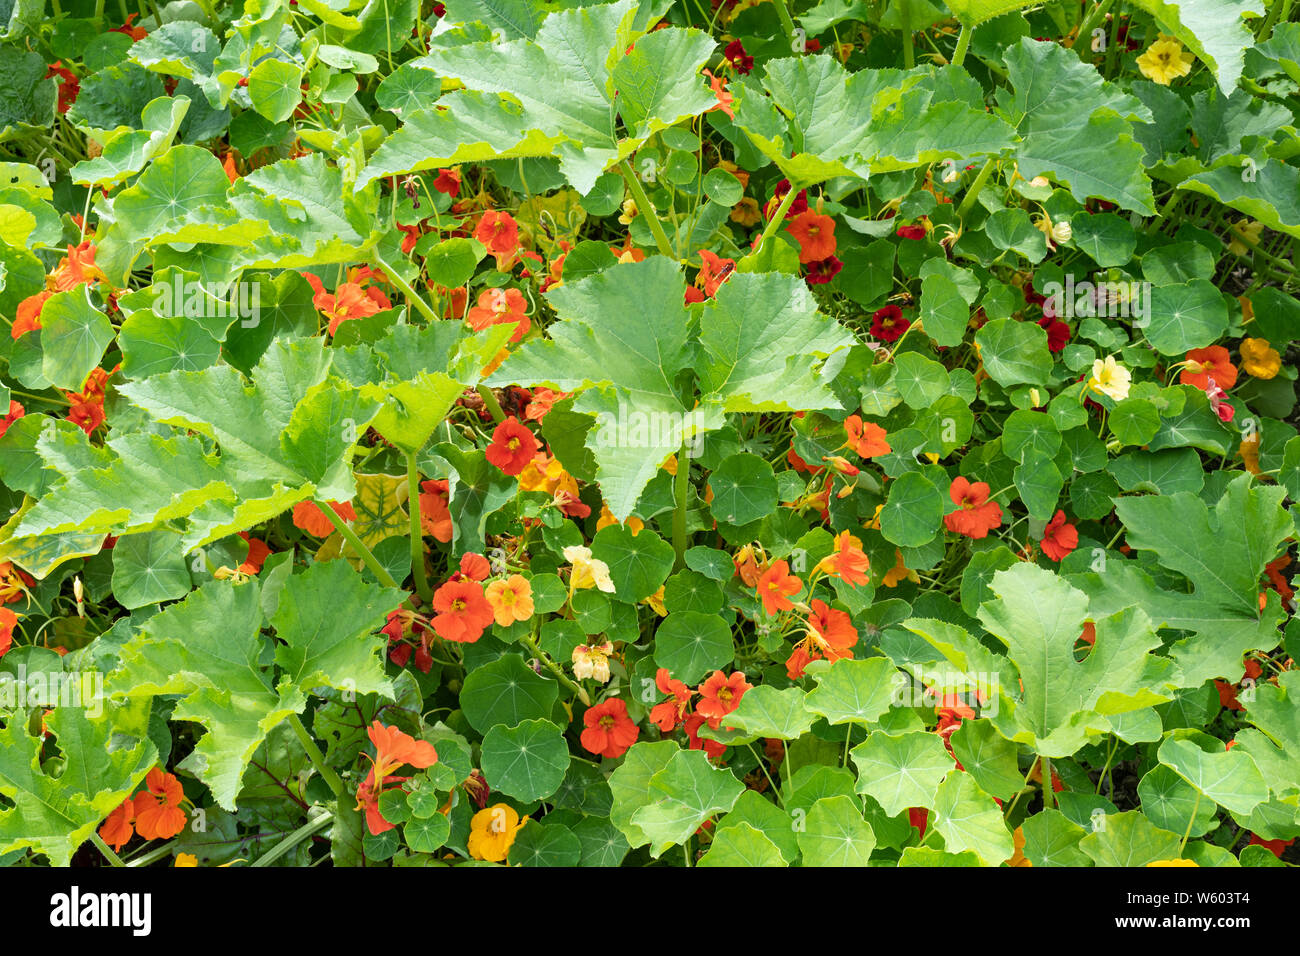 dwarf-nasturtiums-tropaeolum-minus-grown-among-squash-plants-to-protect-against-aphids-in-a-vegetable-garden-uk-summer-W603T4.jpg